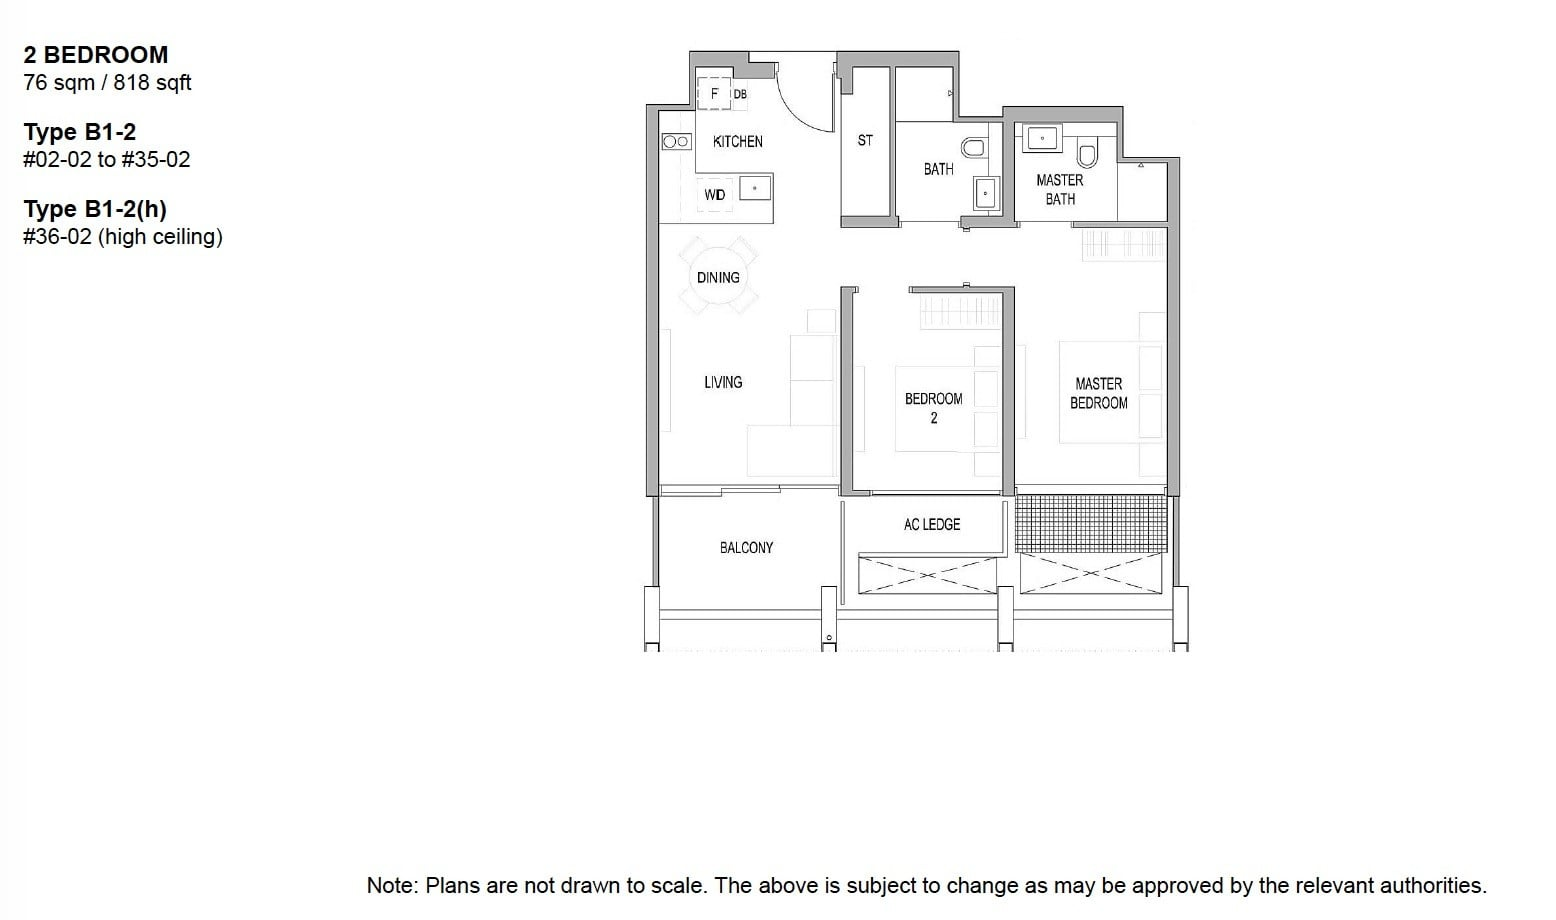 Riviere river valley floor plan 2BR 818 sqft